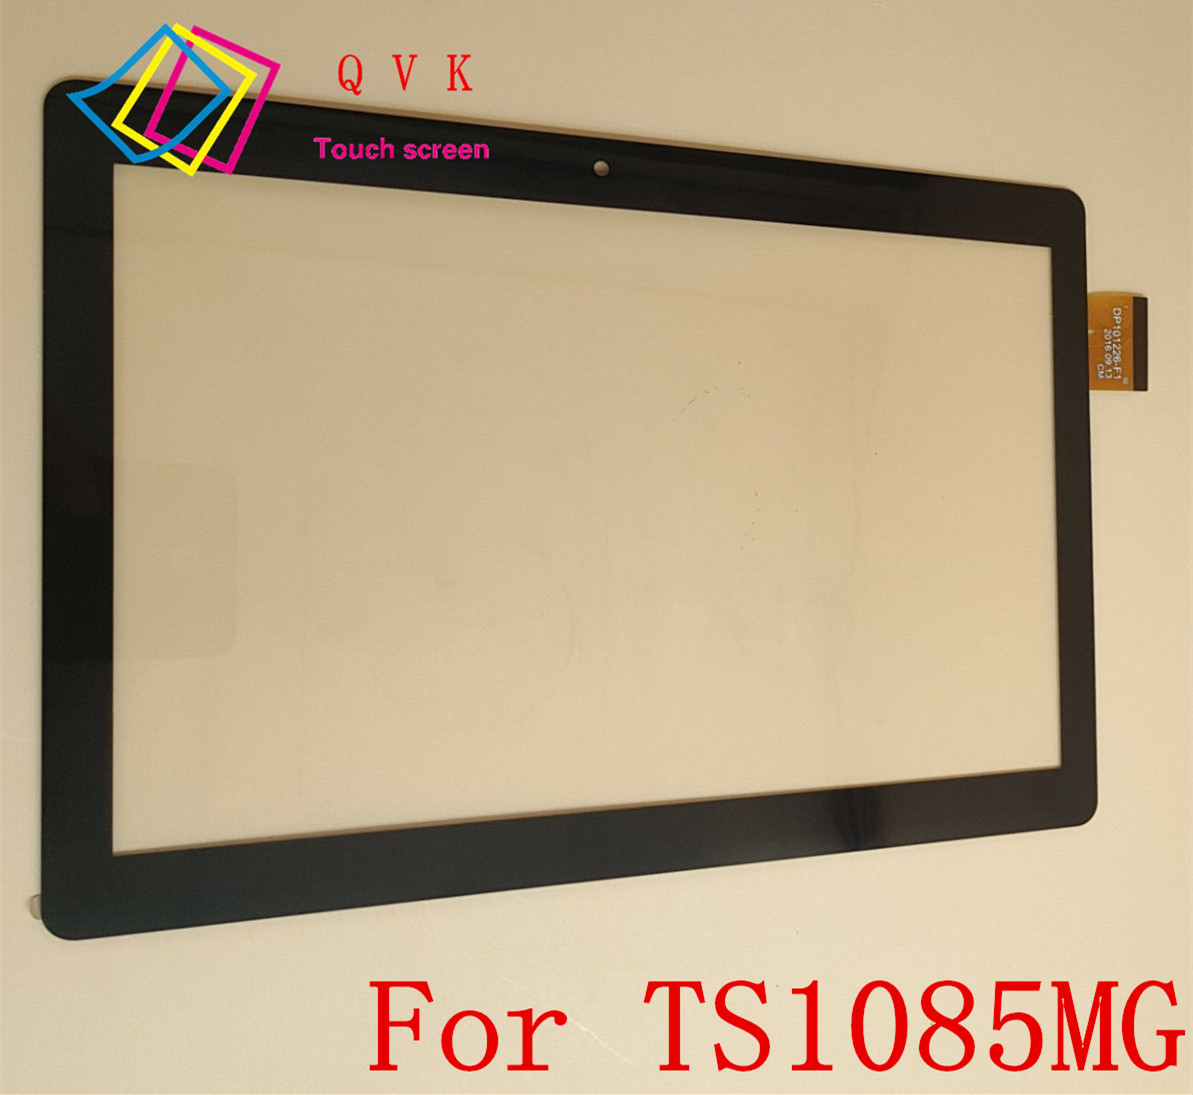 цена на 10.1 inch For Digma Optima 1507 / Plane 1505 3G TS1085MG tablet pc capacitive touch screen glass digitizer panel